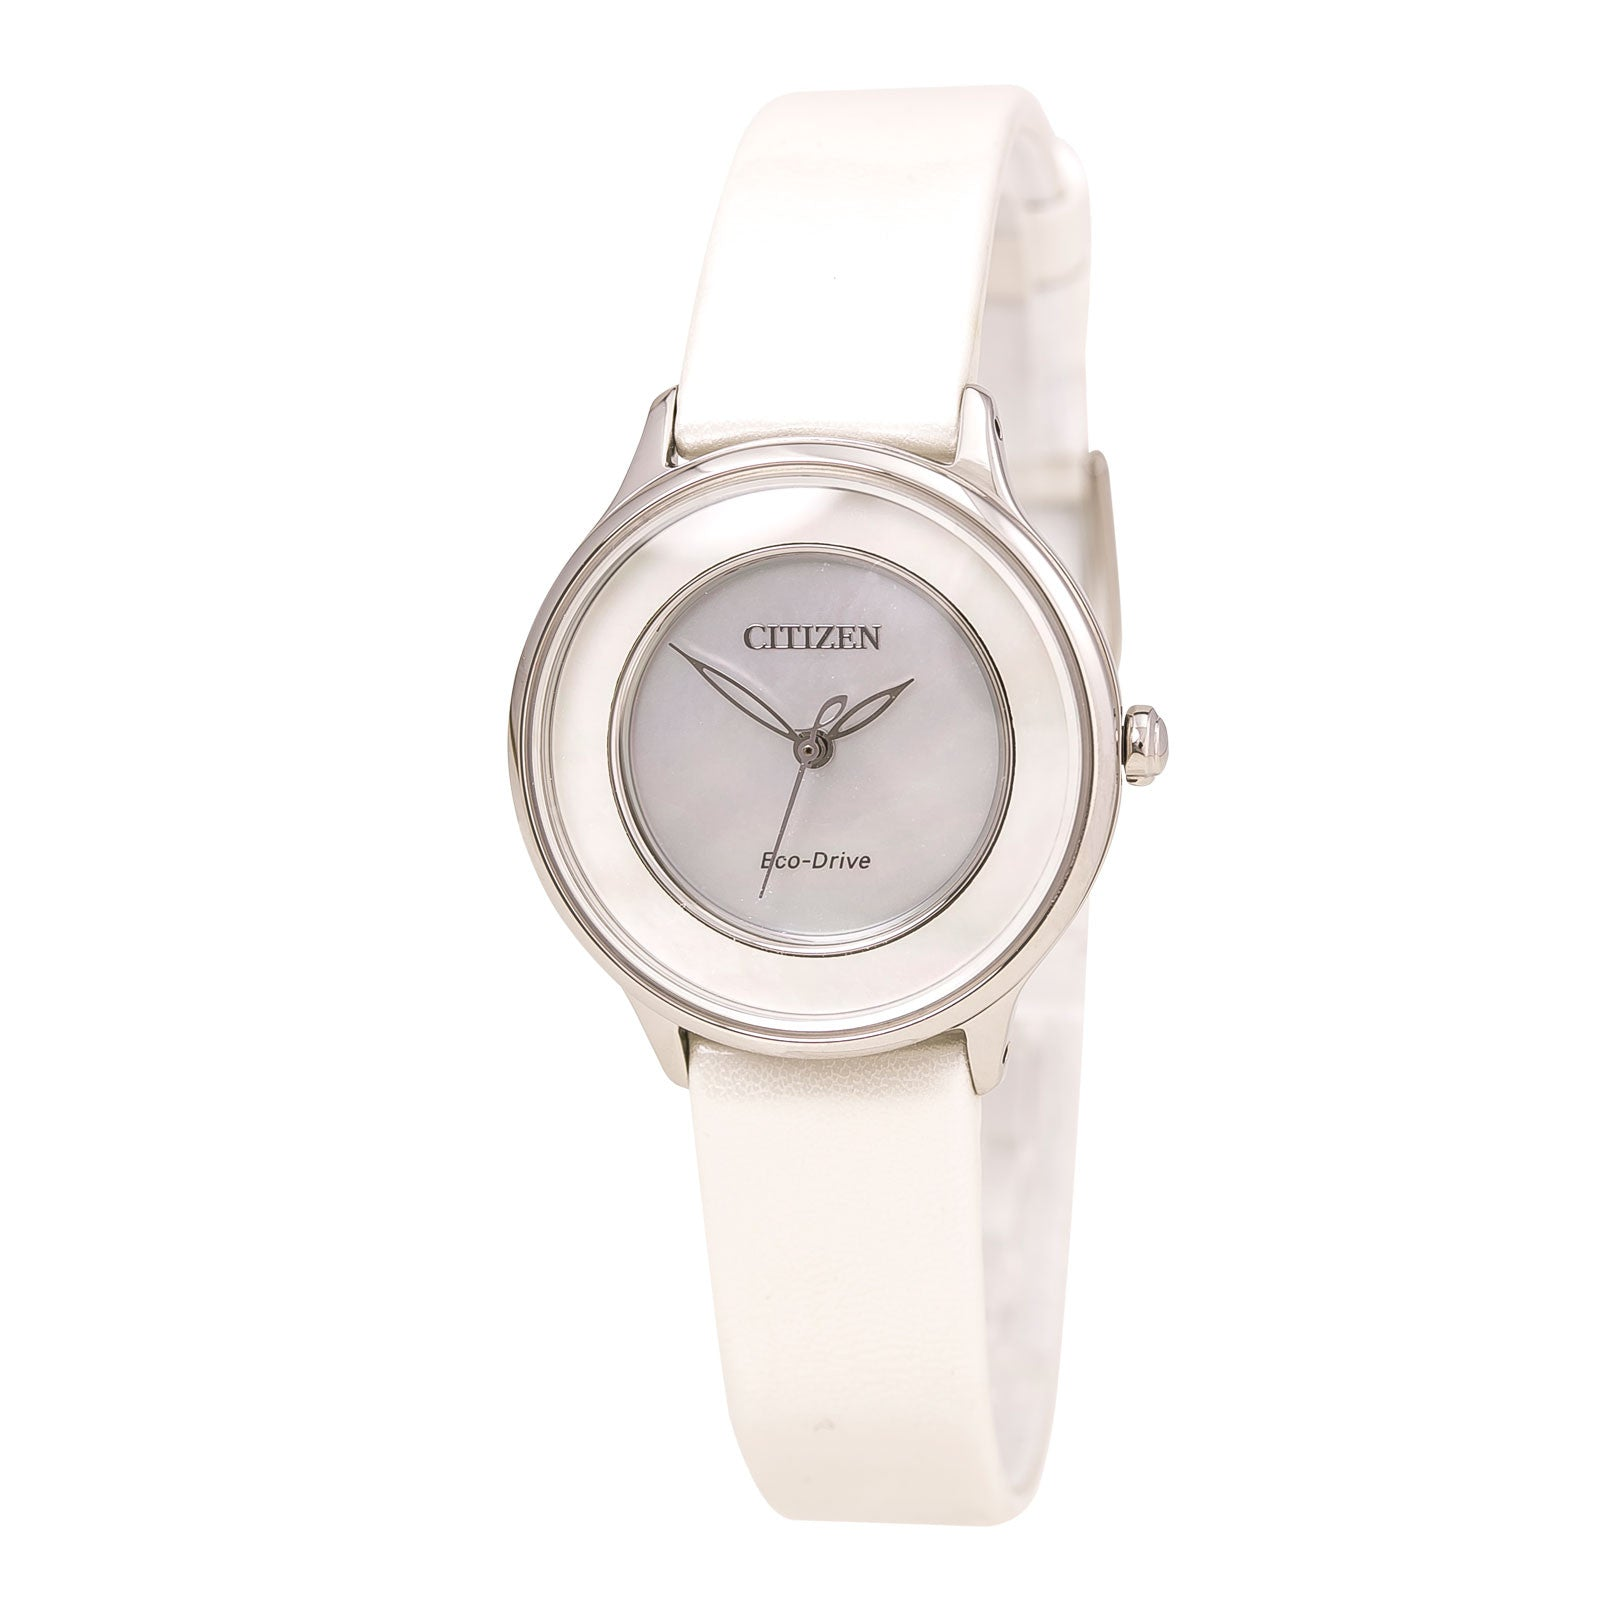 Citizen EM0381-03D Women's L Circle of Time Eco-Drive White MOP Dial White Leather Strap Watch